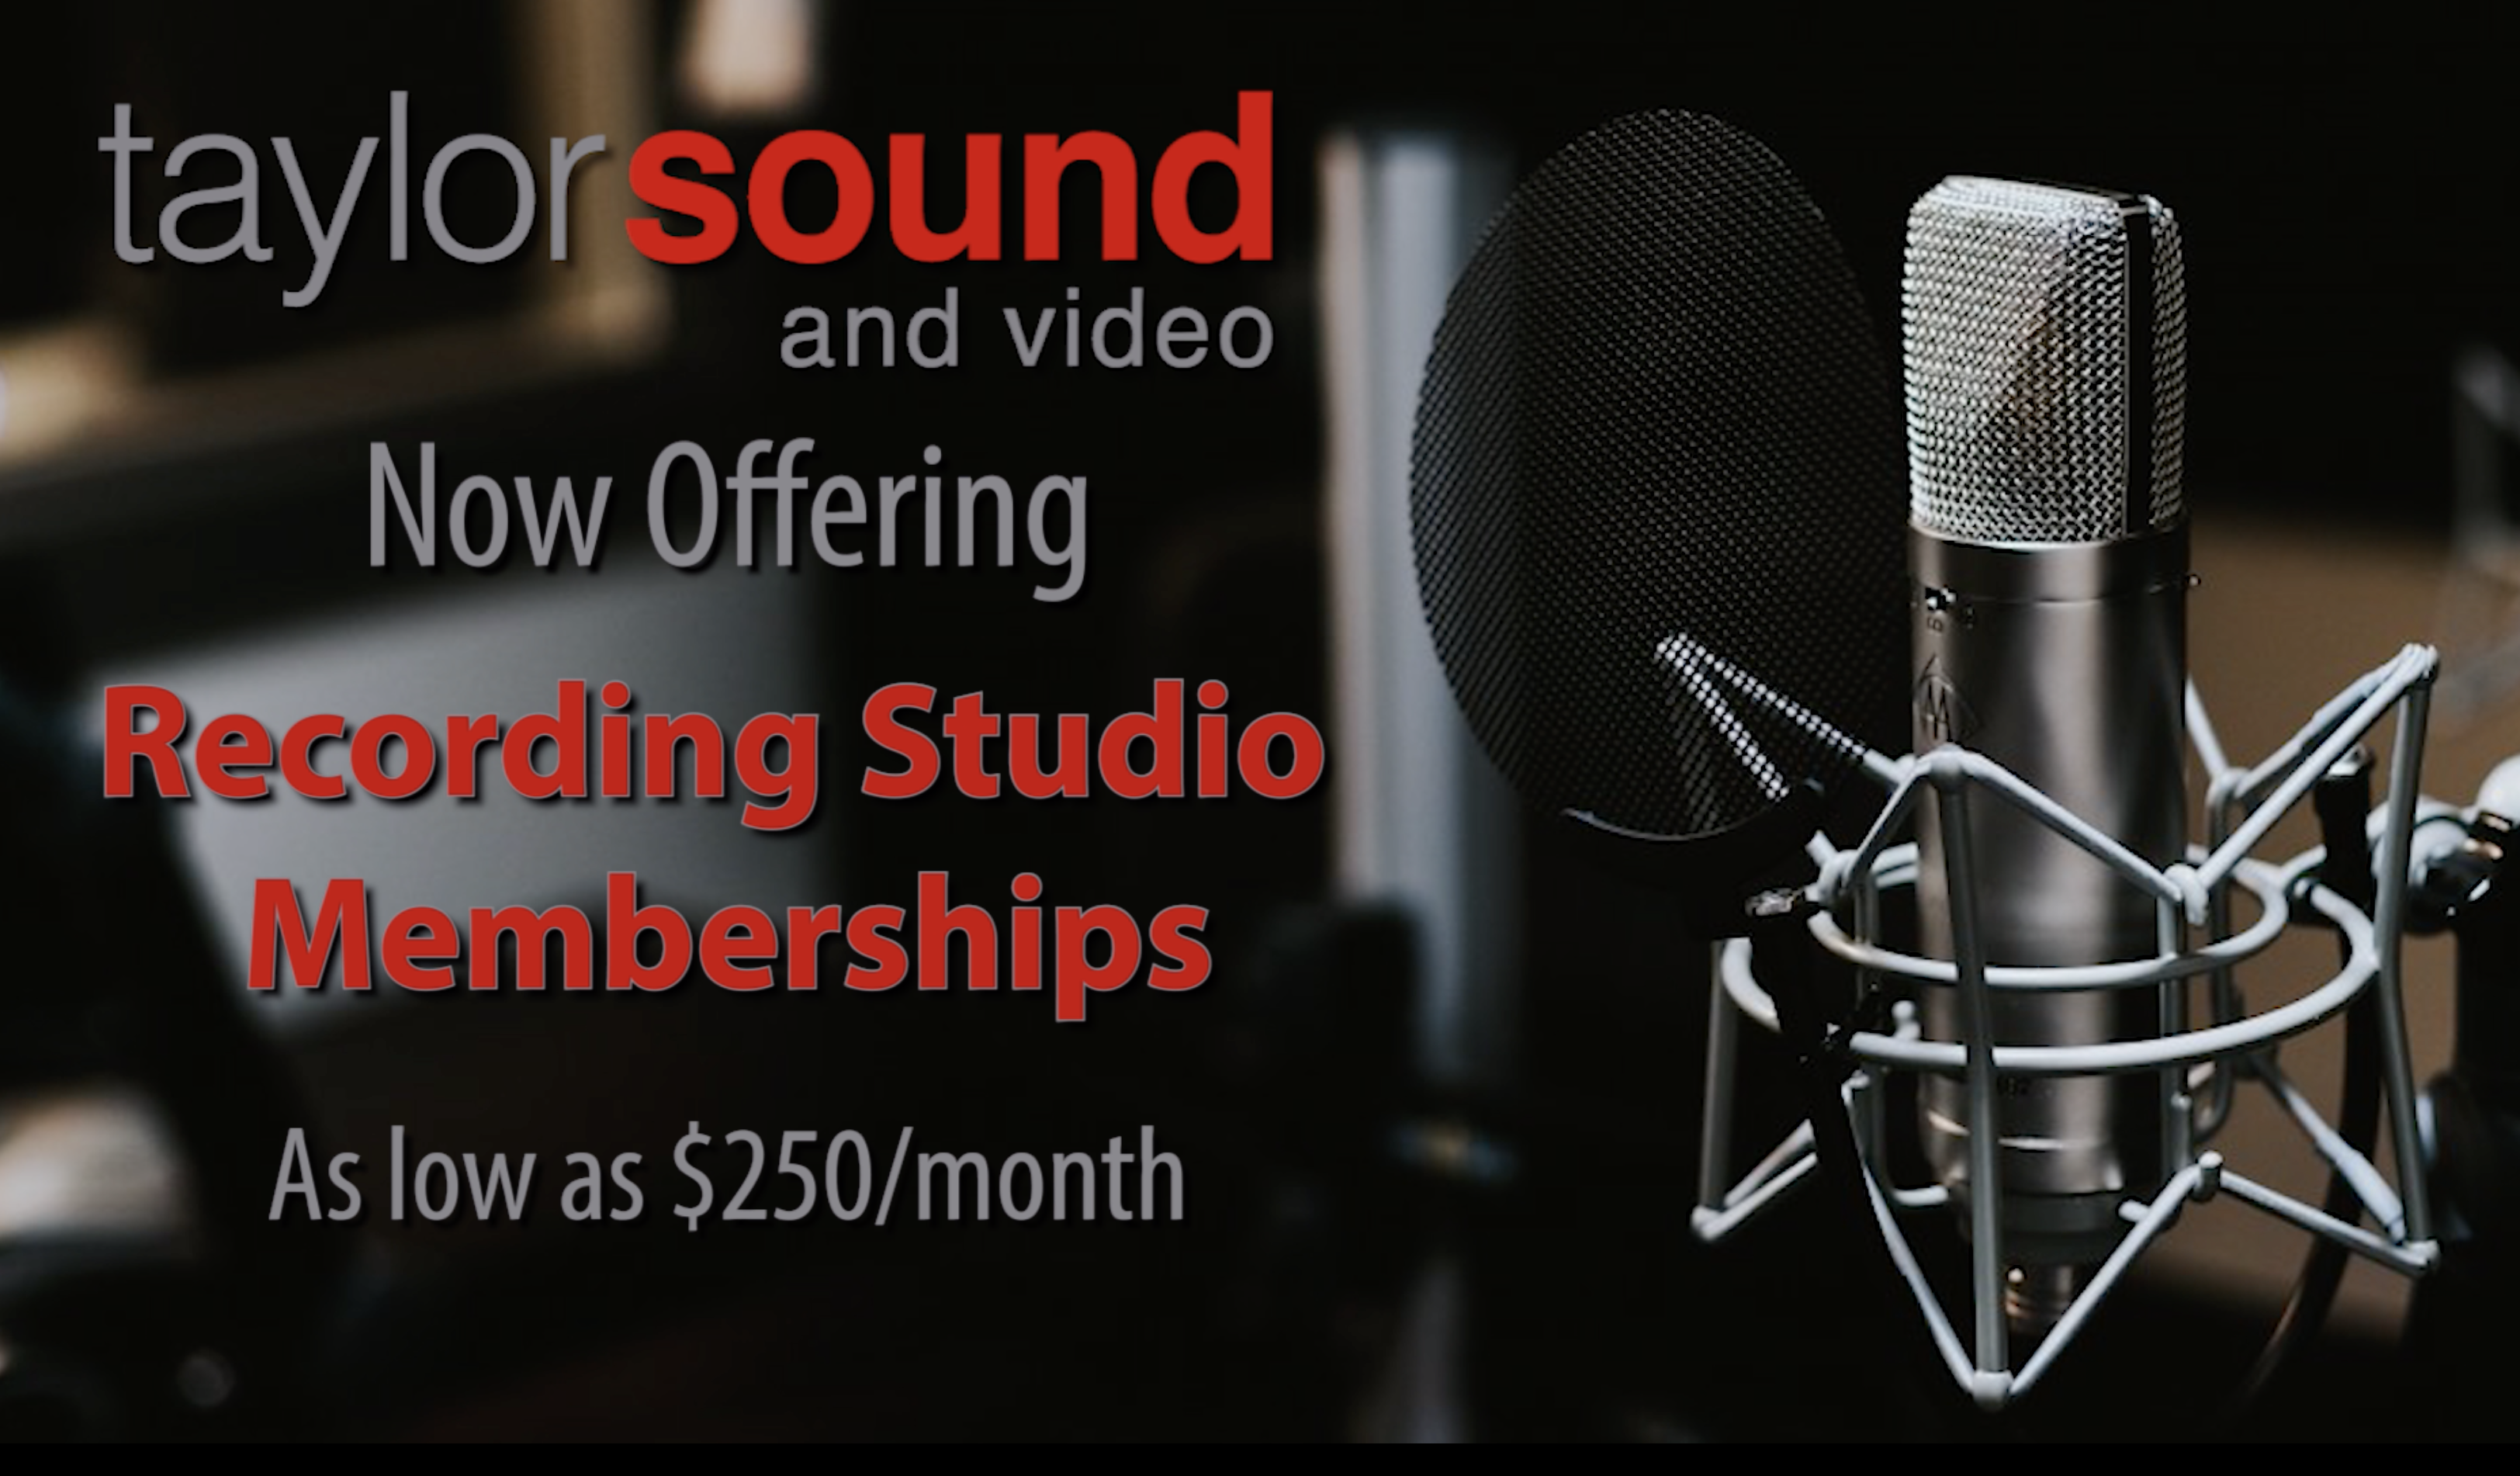 New DIY Recording Packages – Record your own projects at Taylor Sound.